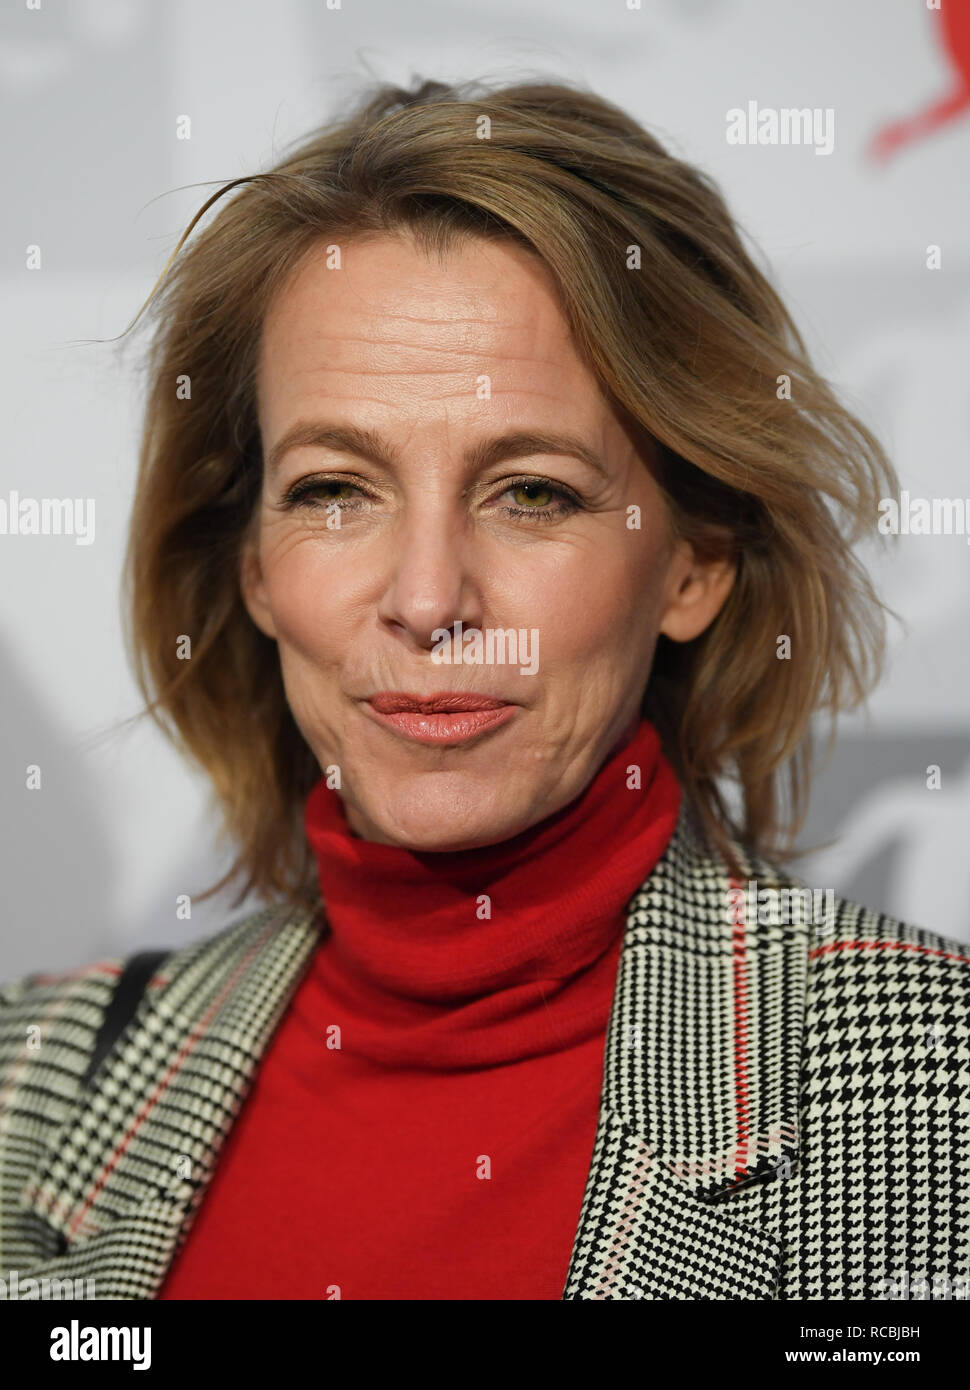 Frankfurt, Germany. 15 January 2019, Julia Jäkel, CEO of Gruner Jahr, will attend the New Year's Reception of the German Football League (DFL). Photo: Arne Dedert/dpa Credit: dpa picture alliance/Alamy Live News - Stock Image